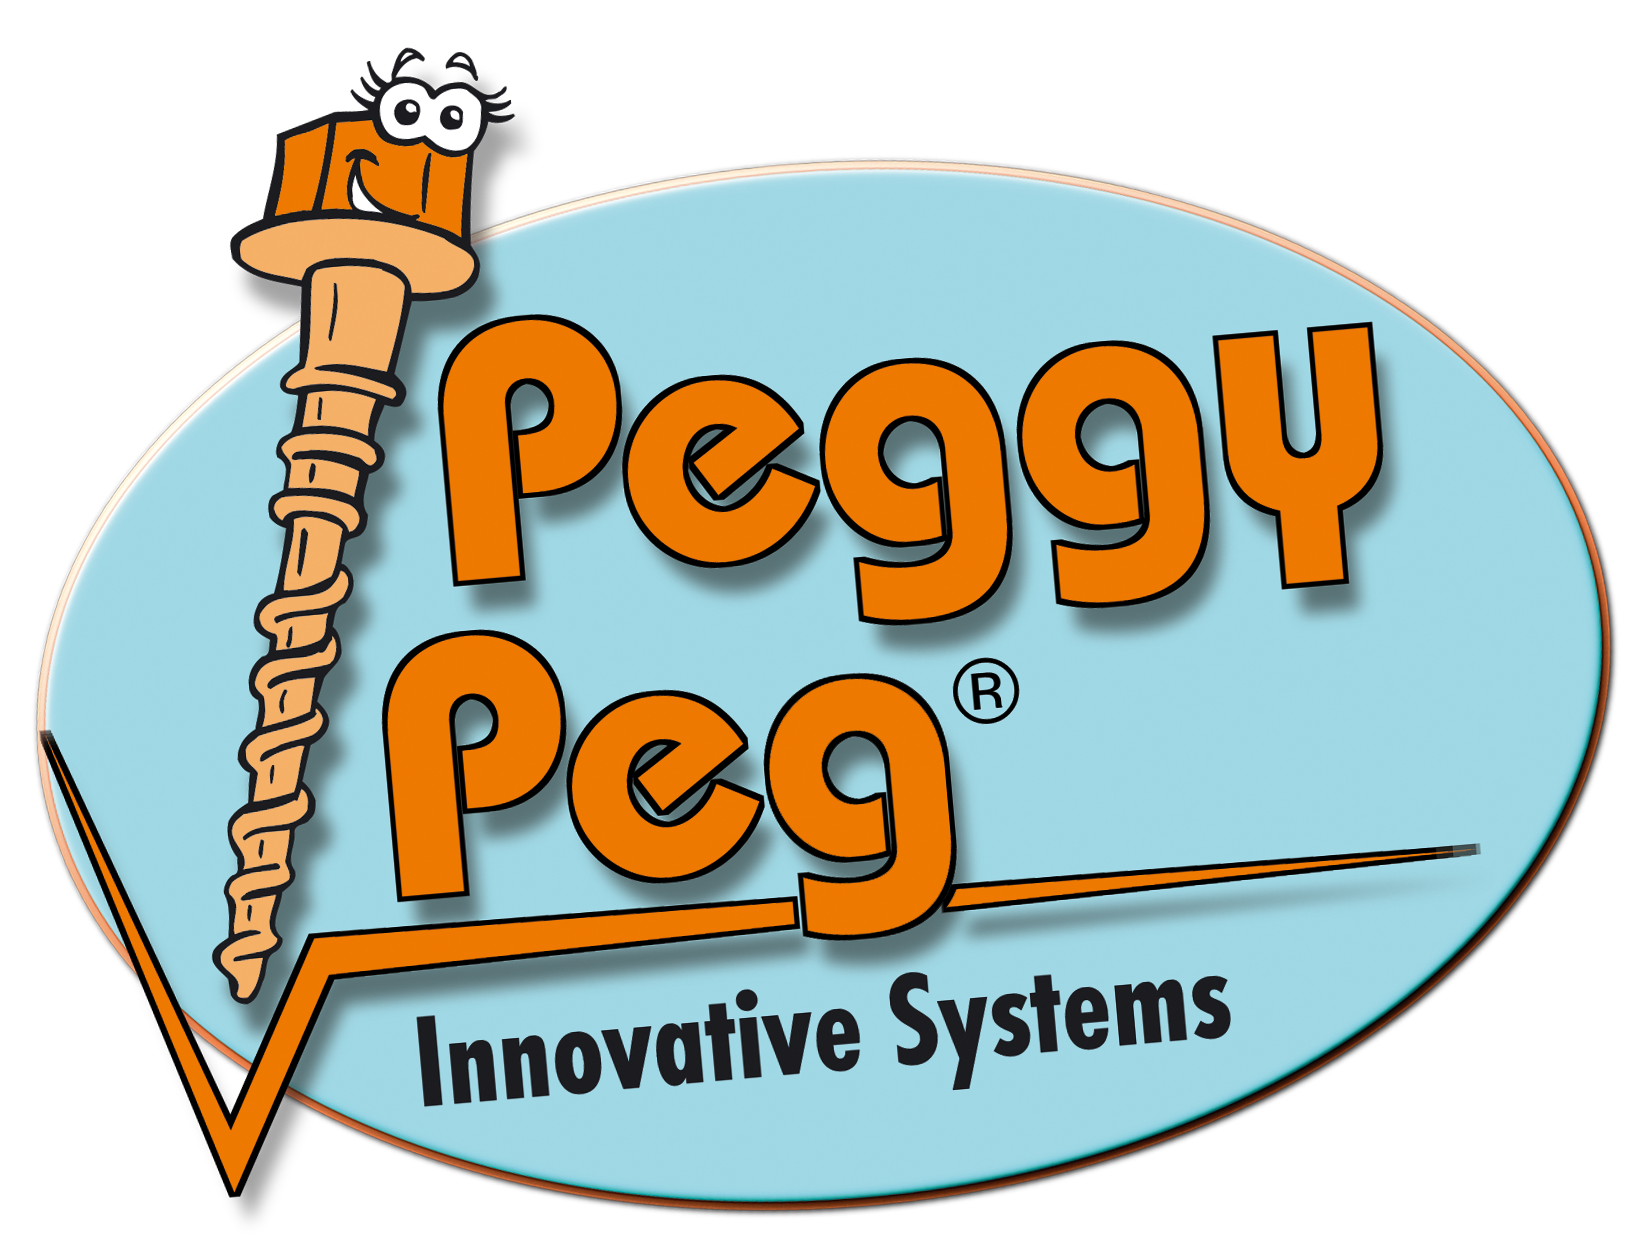 Peggy Peg DE